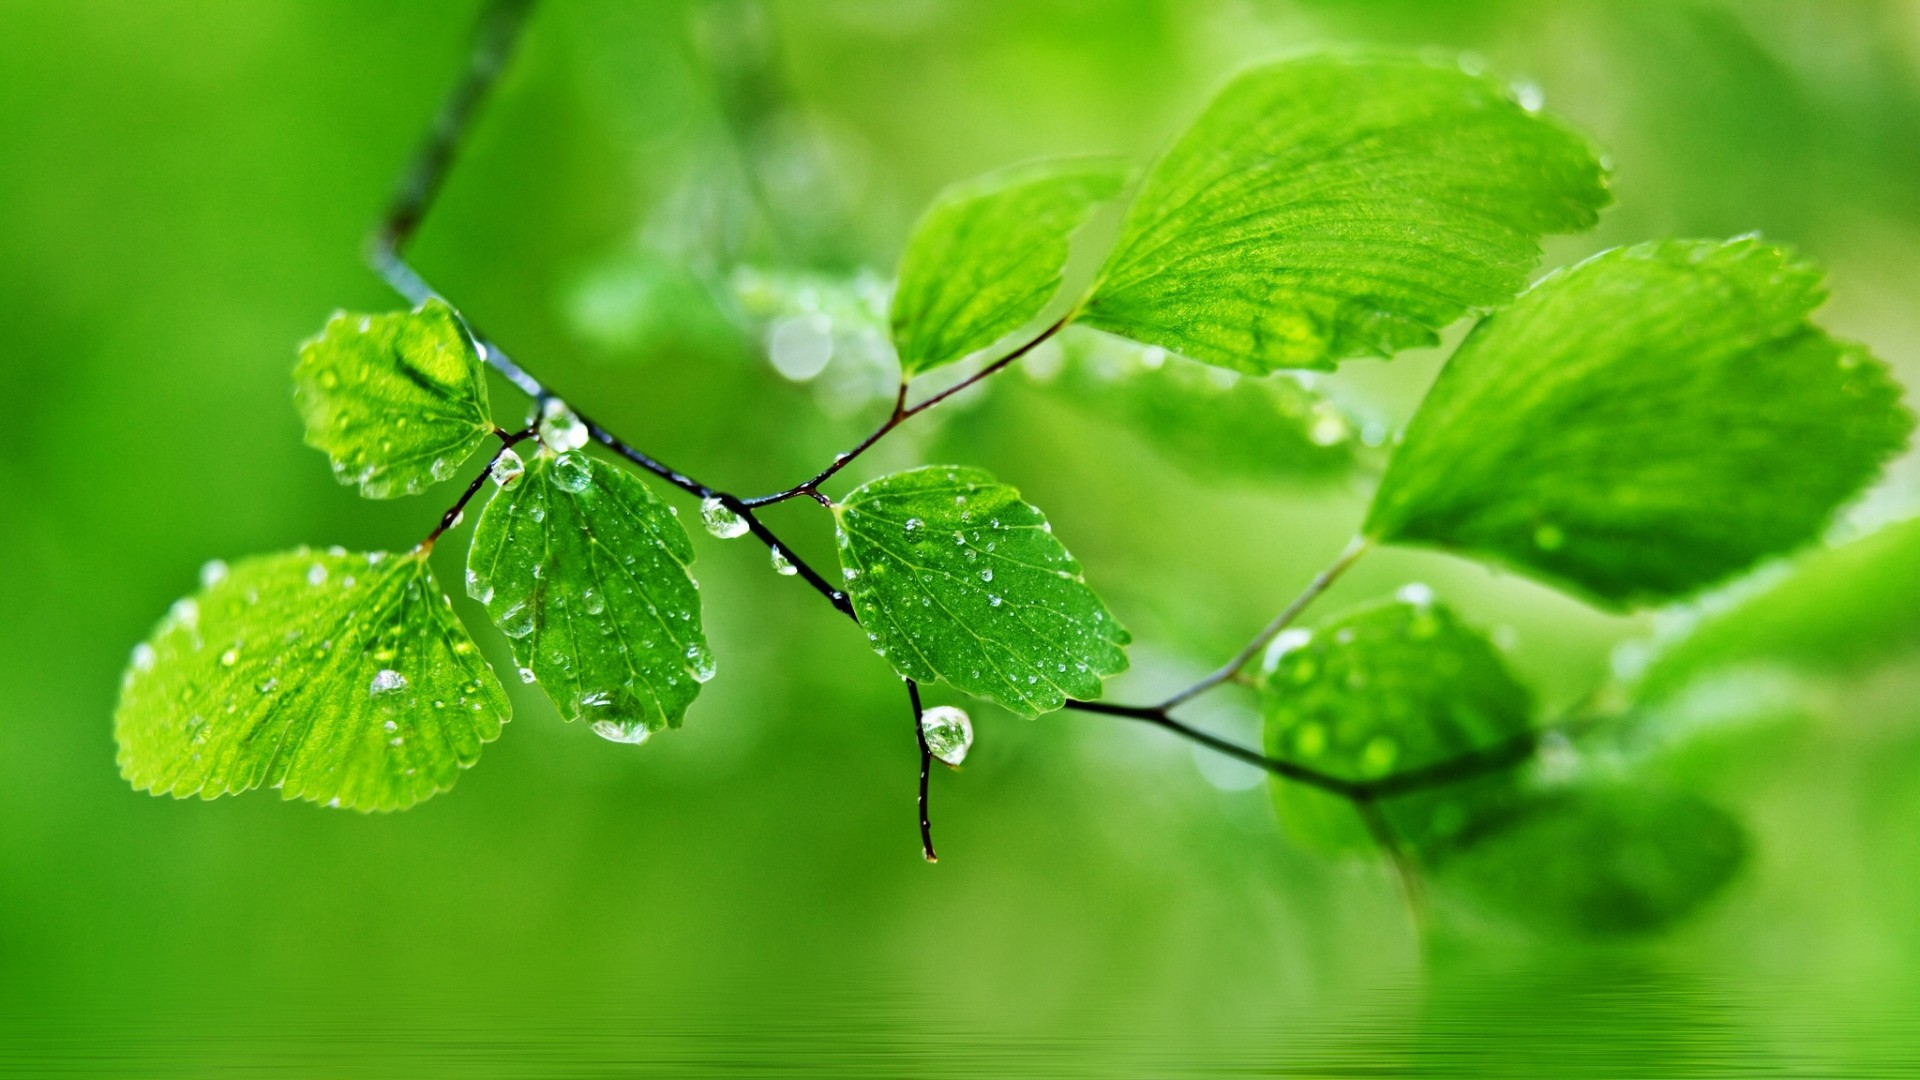 Beautiful Rain Drops Wallpapers With Quotes 52 Images